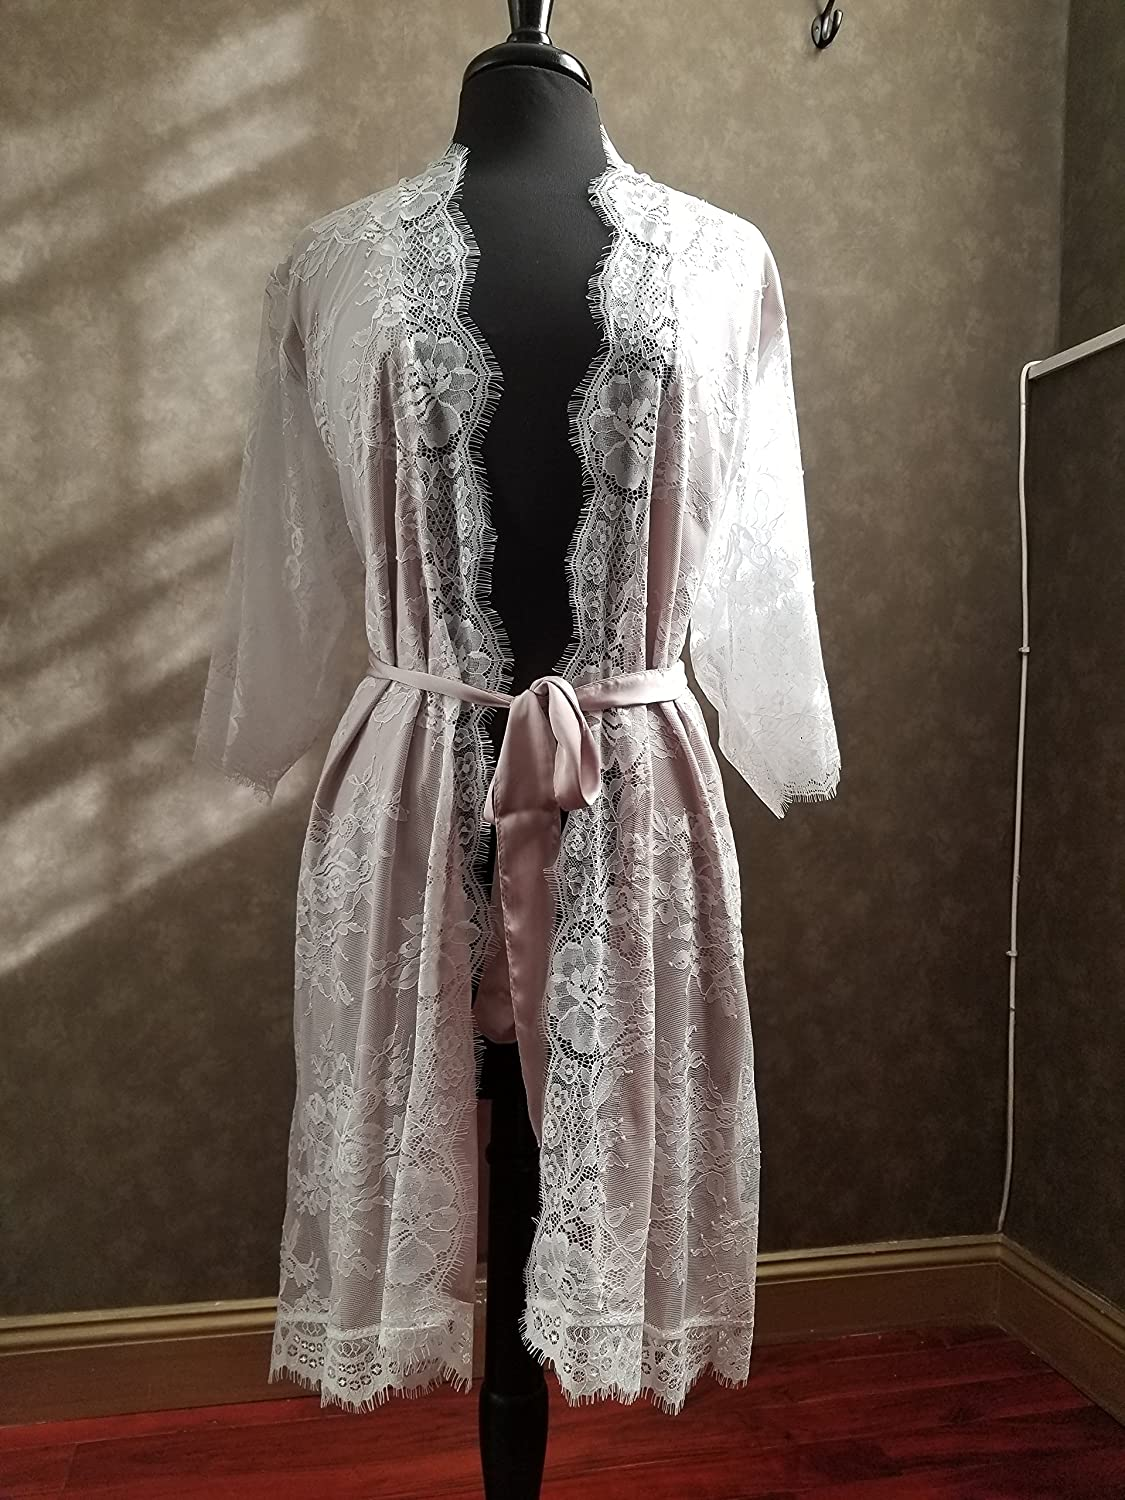 Lined Lace Bridal Robe Getting Ready Robe for Wedding